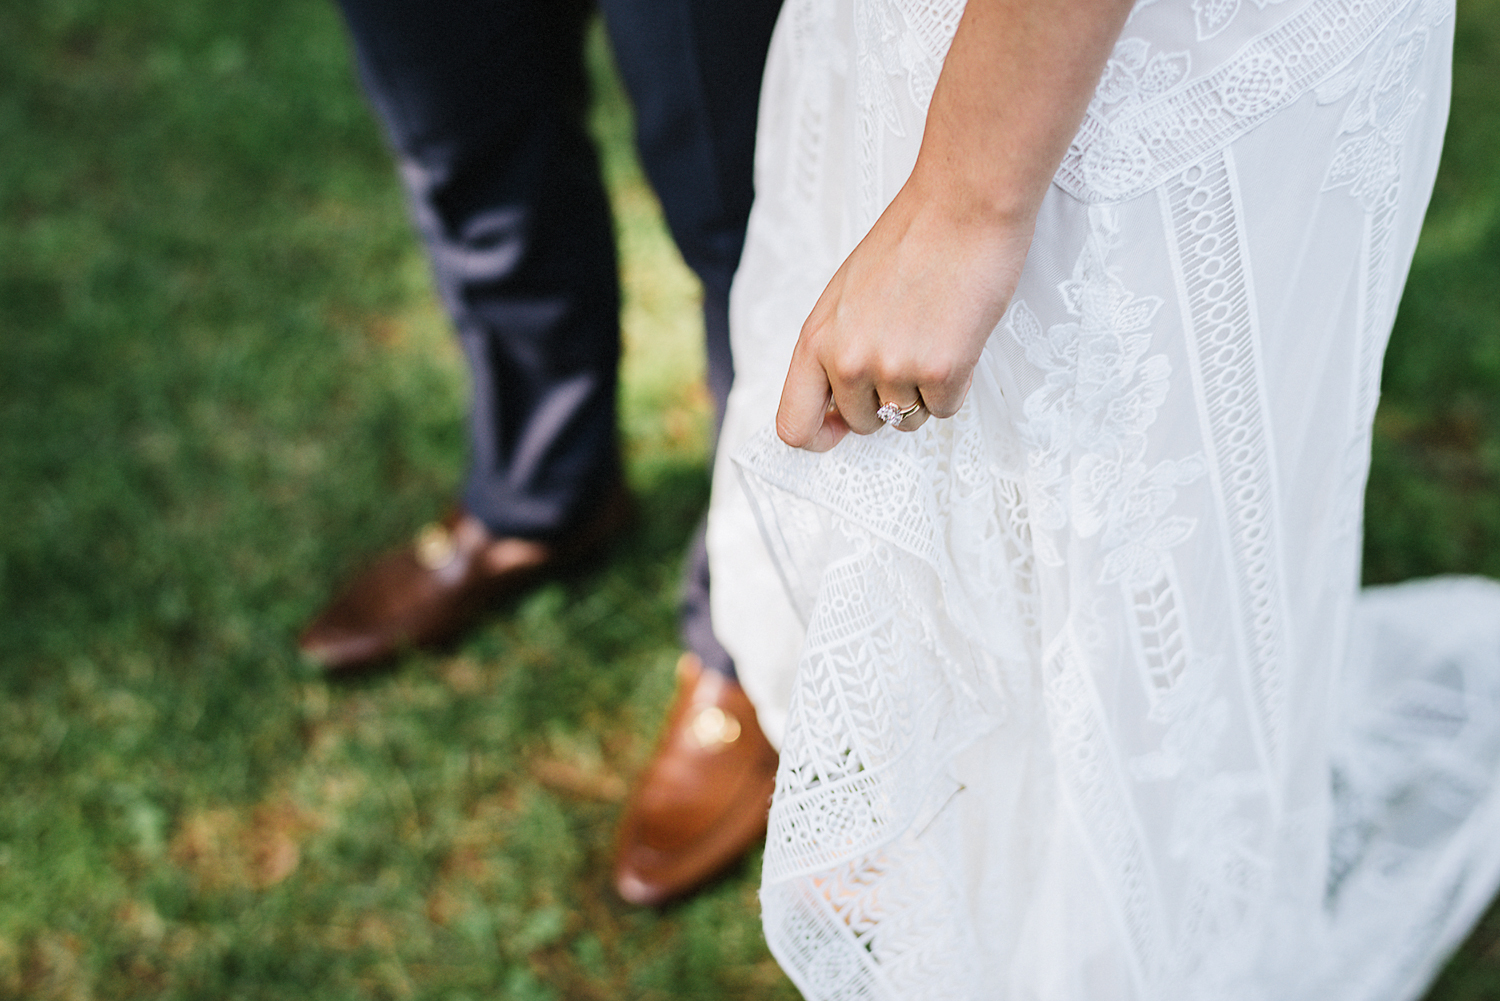 Muskoka-Cottage-Wedding-Photography-Photographer_Photojournalistic-Documentary-Wedding-Photography_Vintage-Bride-Lovers-Land-Dress_Rue-Des-Seins_Bridal-Portrait-Boho-bride-hand-dress-details.jpg